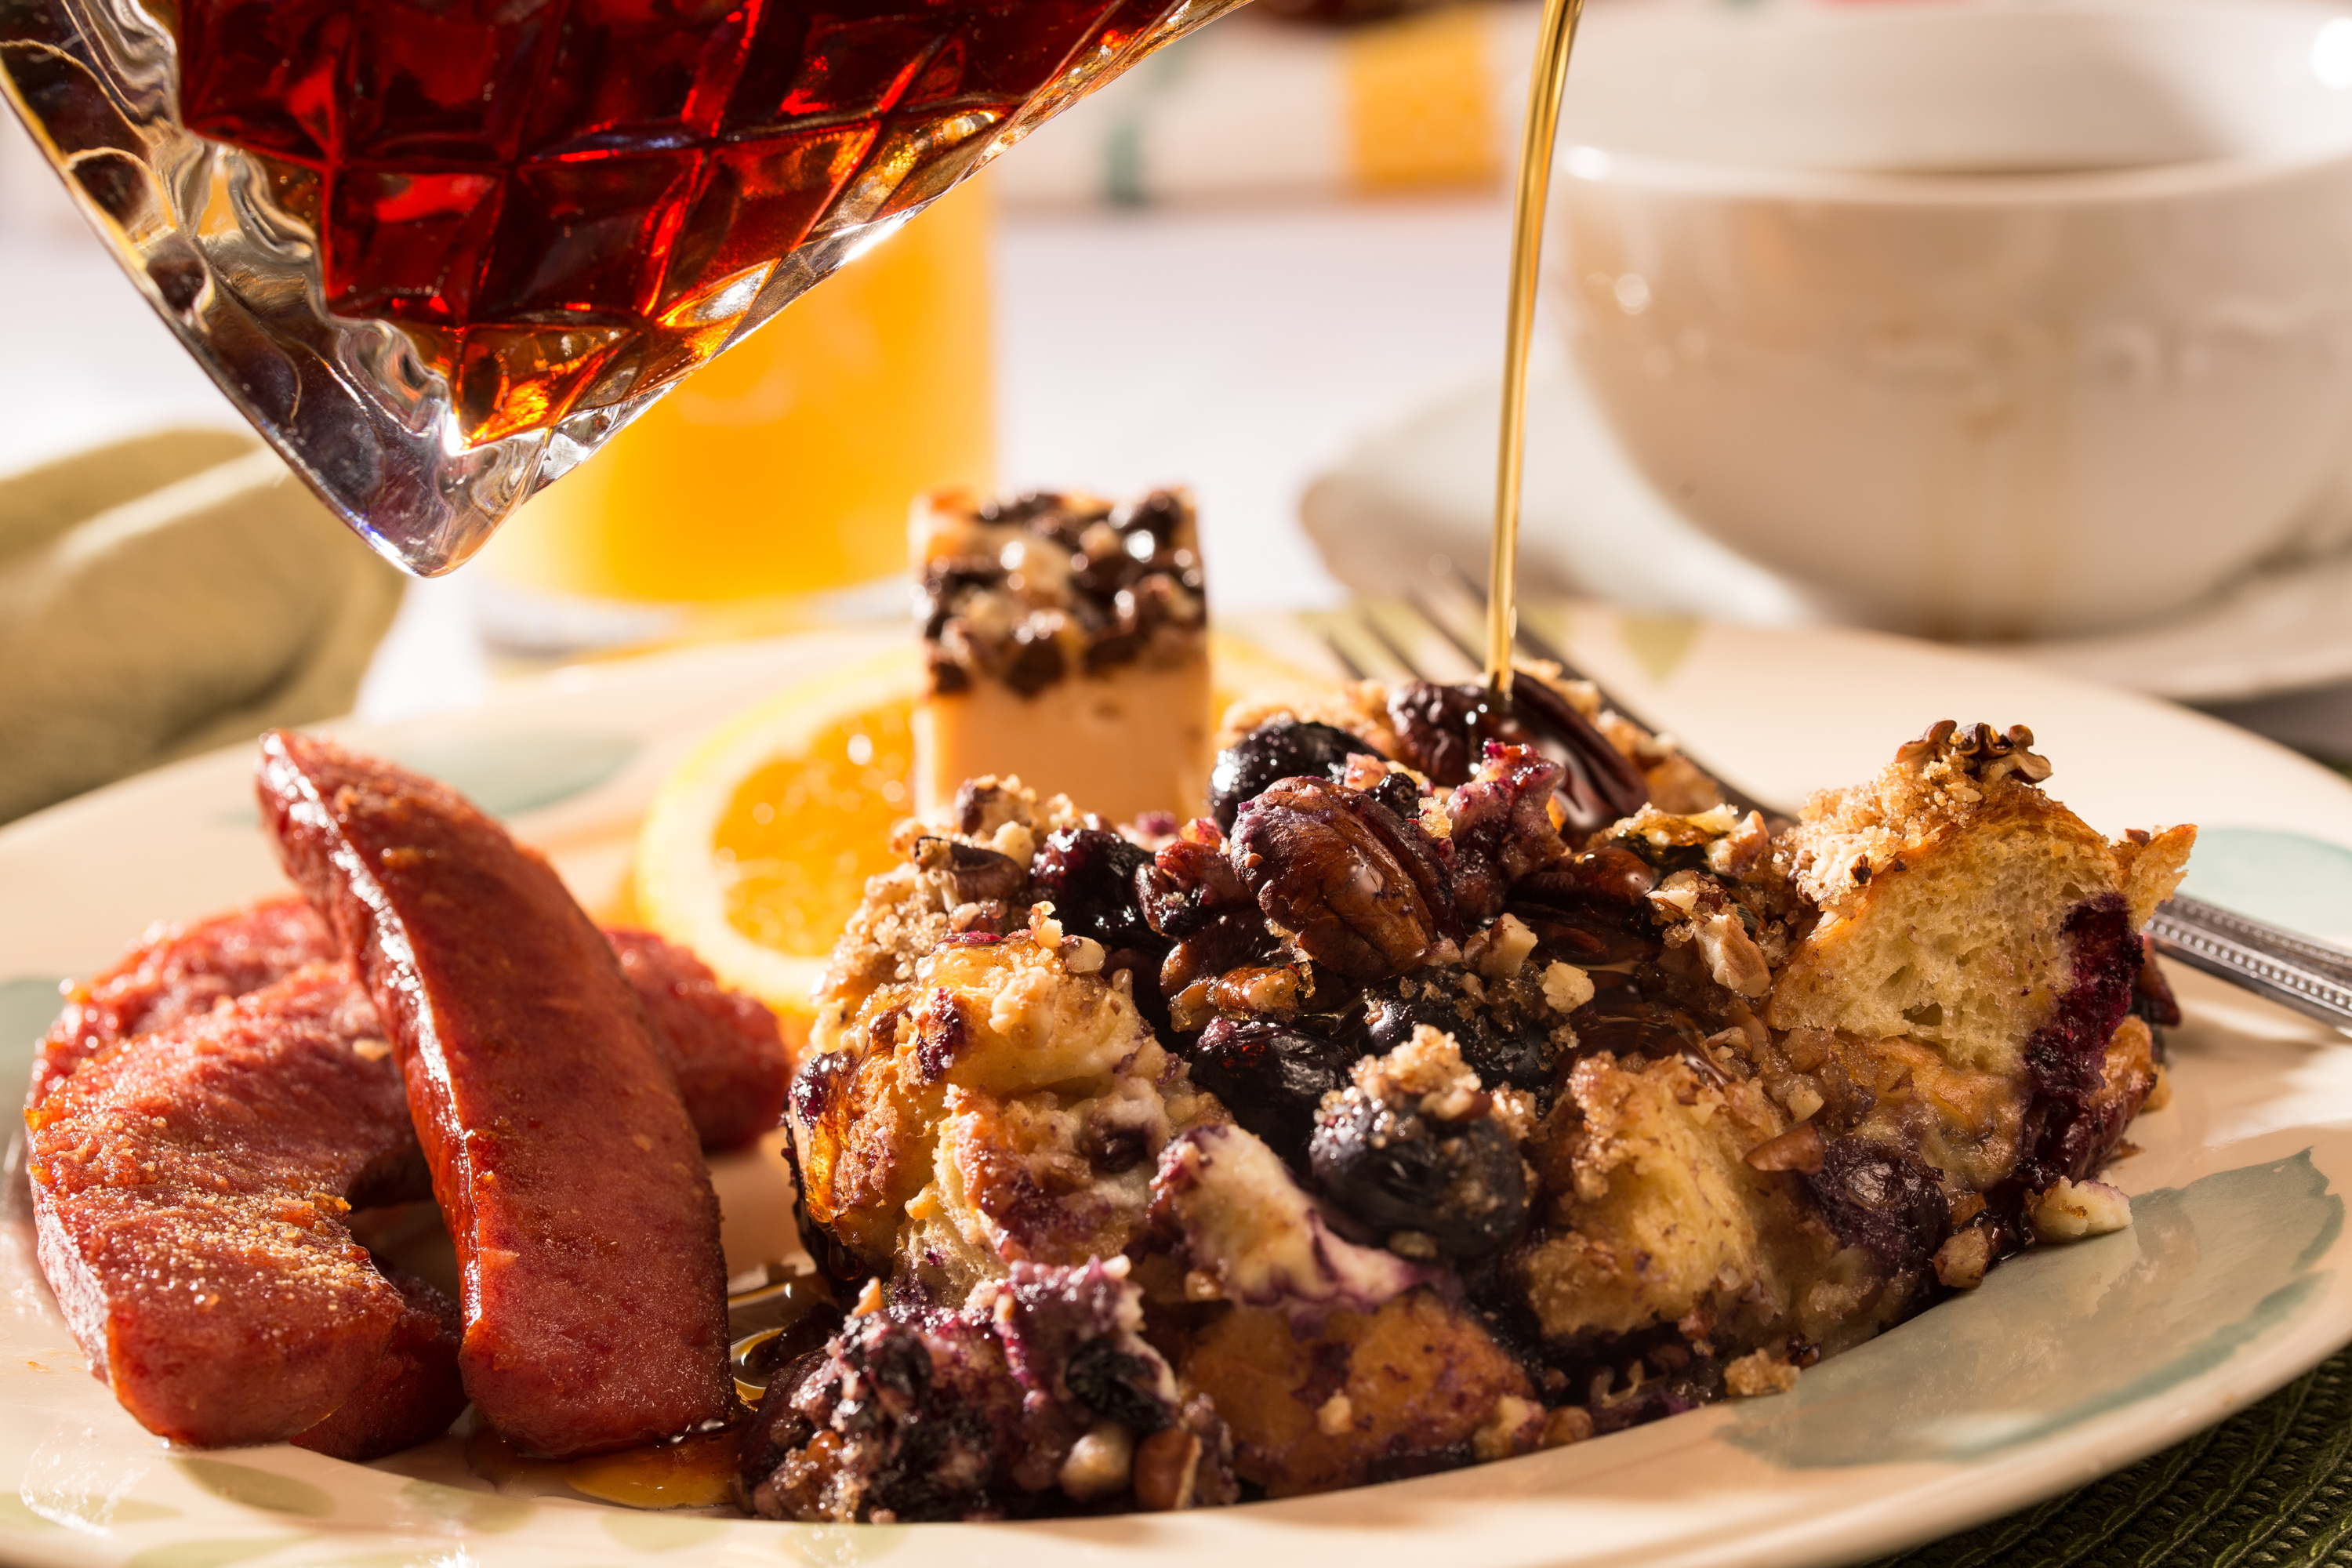 A breakfast of smoked sausage served with blueberry french toast bake. Maple syrup is being drizzled over the french toast.